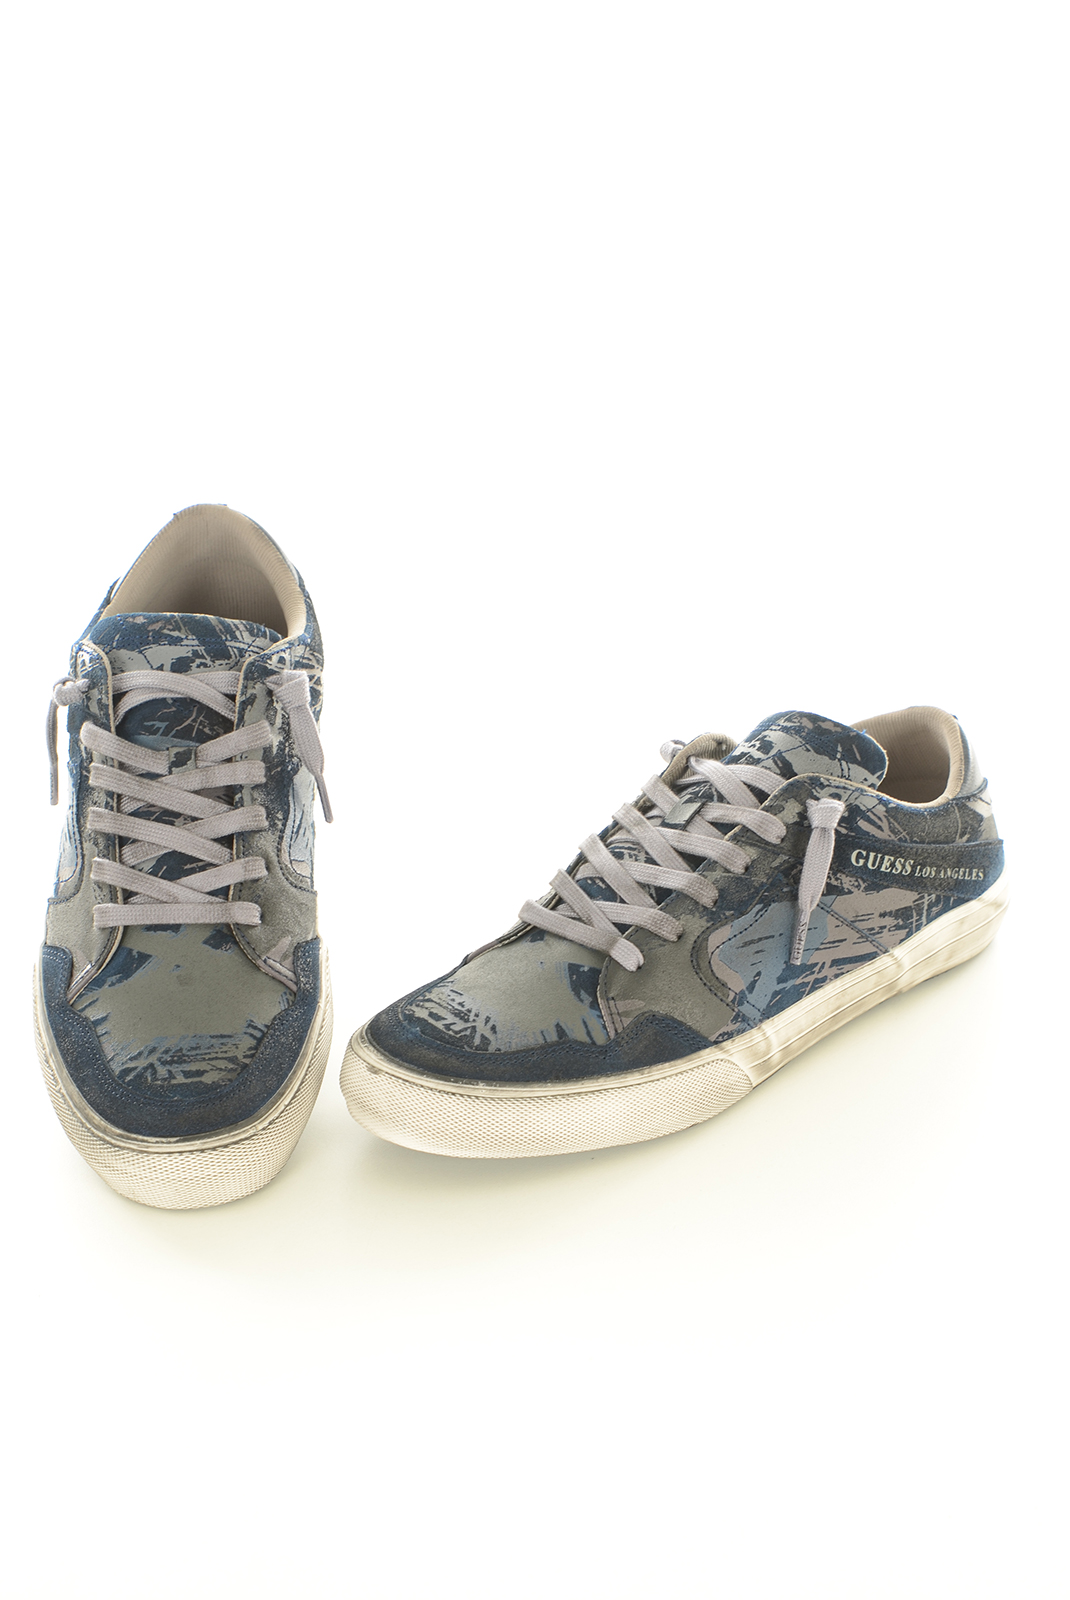 Chaussures   Guess jeans FMRG74SUE12 BLUE